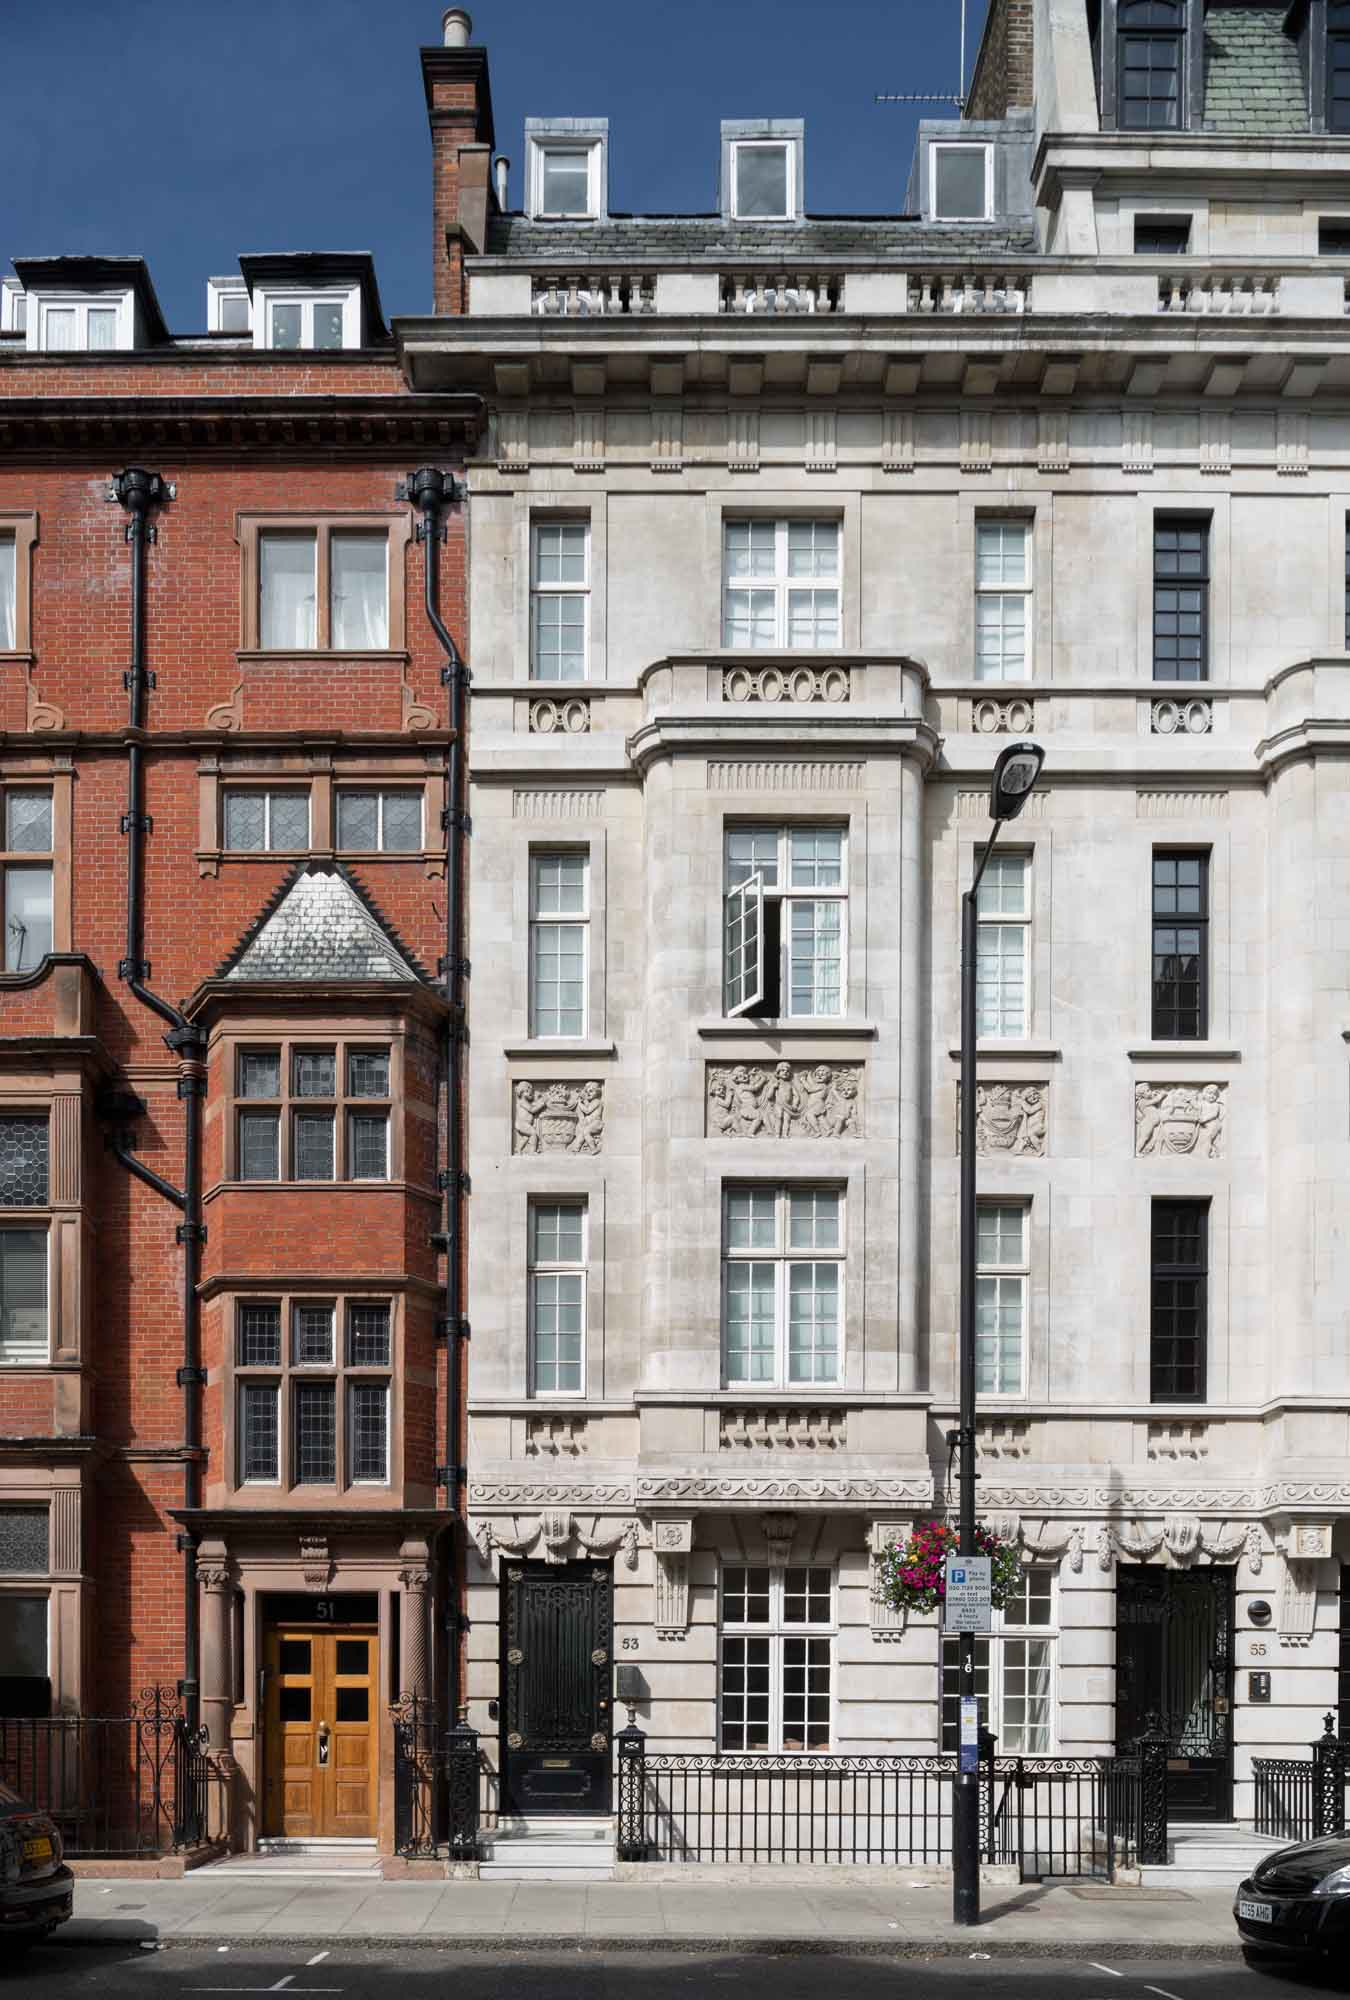 Nos 51 (left) and 53 Harley Street. No. 51was built in 1894 to designs by F. M. Elgood for the surgeon William Bruce Clarke on the site of the Turk's Head pub. No. 53 was designed by Wills & Kaula and completed in 1914-15 as a home and practice for the surgeon and urologist Frank Seymour Kidd.